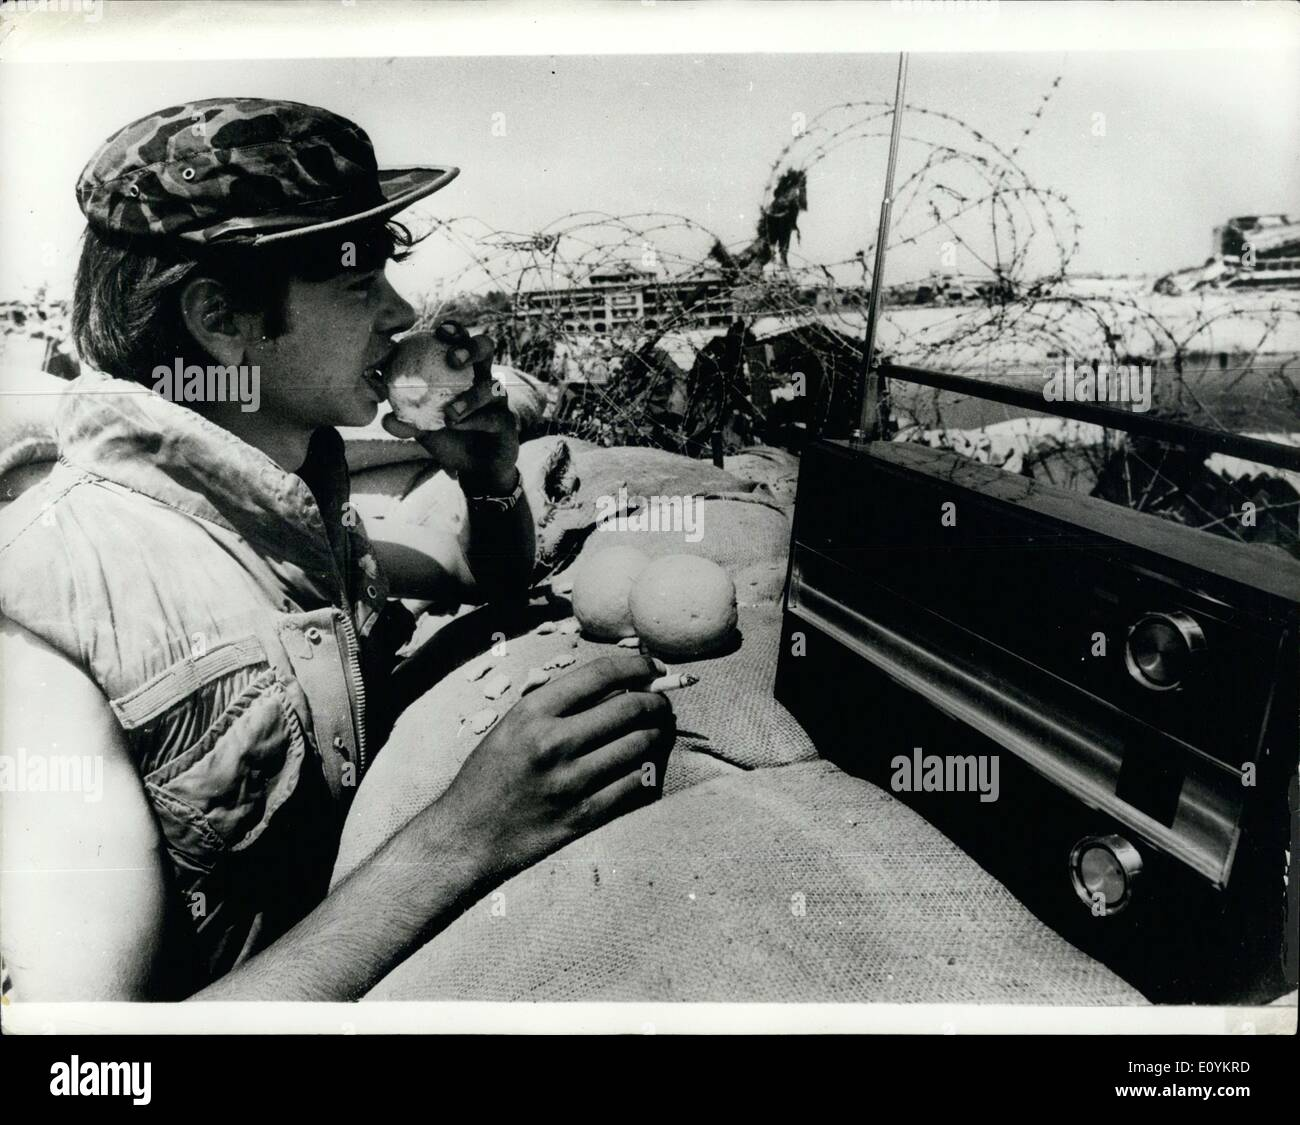 Sep. 09, 1970 - Enjoying the Ceasefire along the Suez Canal: With the Ceasefire being fairly well adhered to along the Suez Canal itself -Israeli soldiers are relaxing at the BarLev Line facing the canal, constant action and life practically underground in the bunkers. At the same time they are ever at the ready,prepared for any eventuality. A month age if someone had seen a Soldier with out his helmet standing outside in the sun. gazing sears the canal through his binoculars, he would have thought he was dreaming. now this is part of the way of life - Stock Image